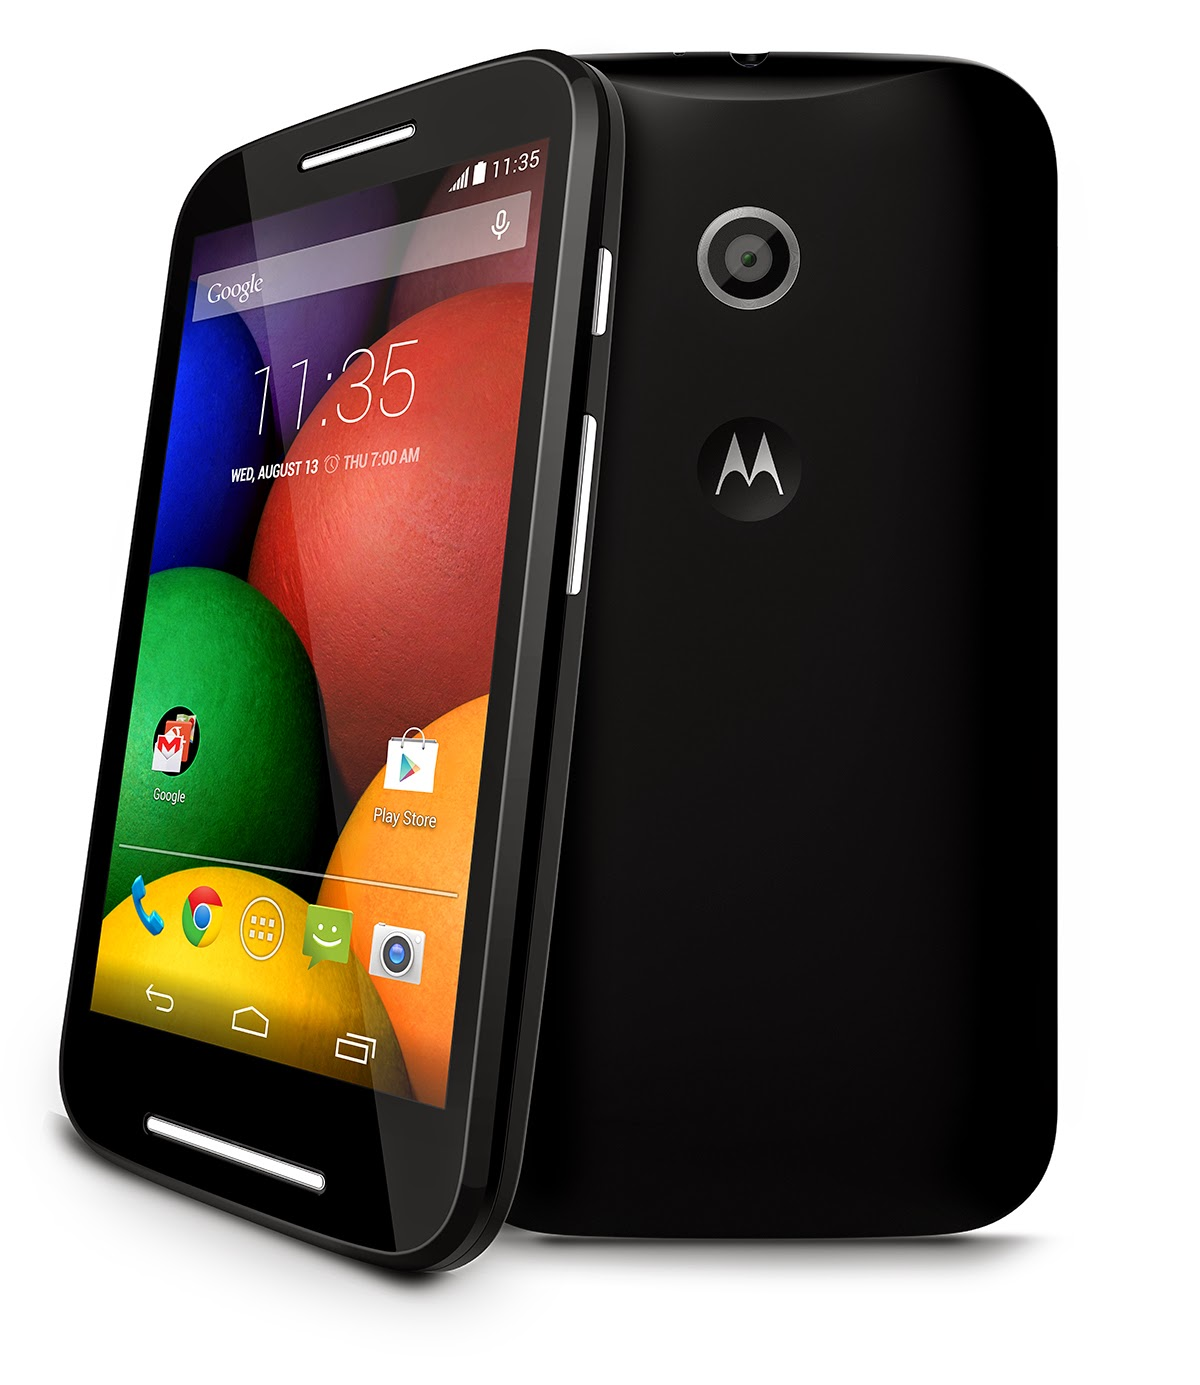 Introducing Moto E and Moto G with 4G LTE: Smart phones priced for all